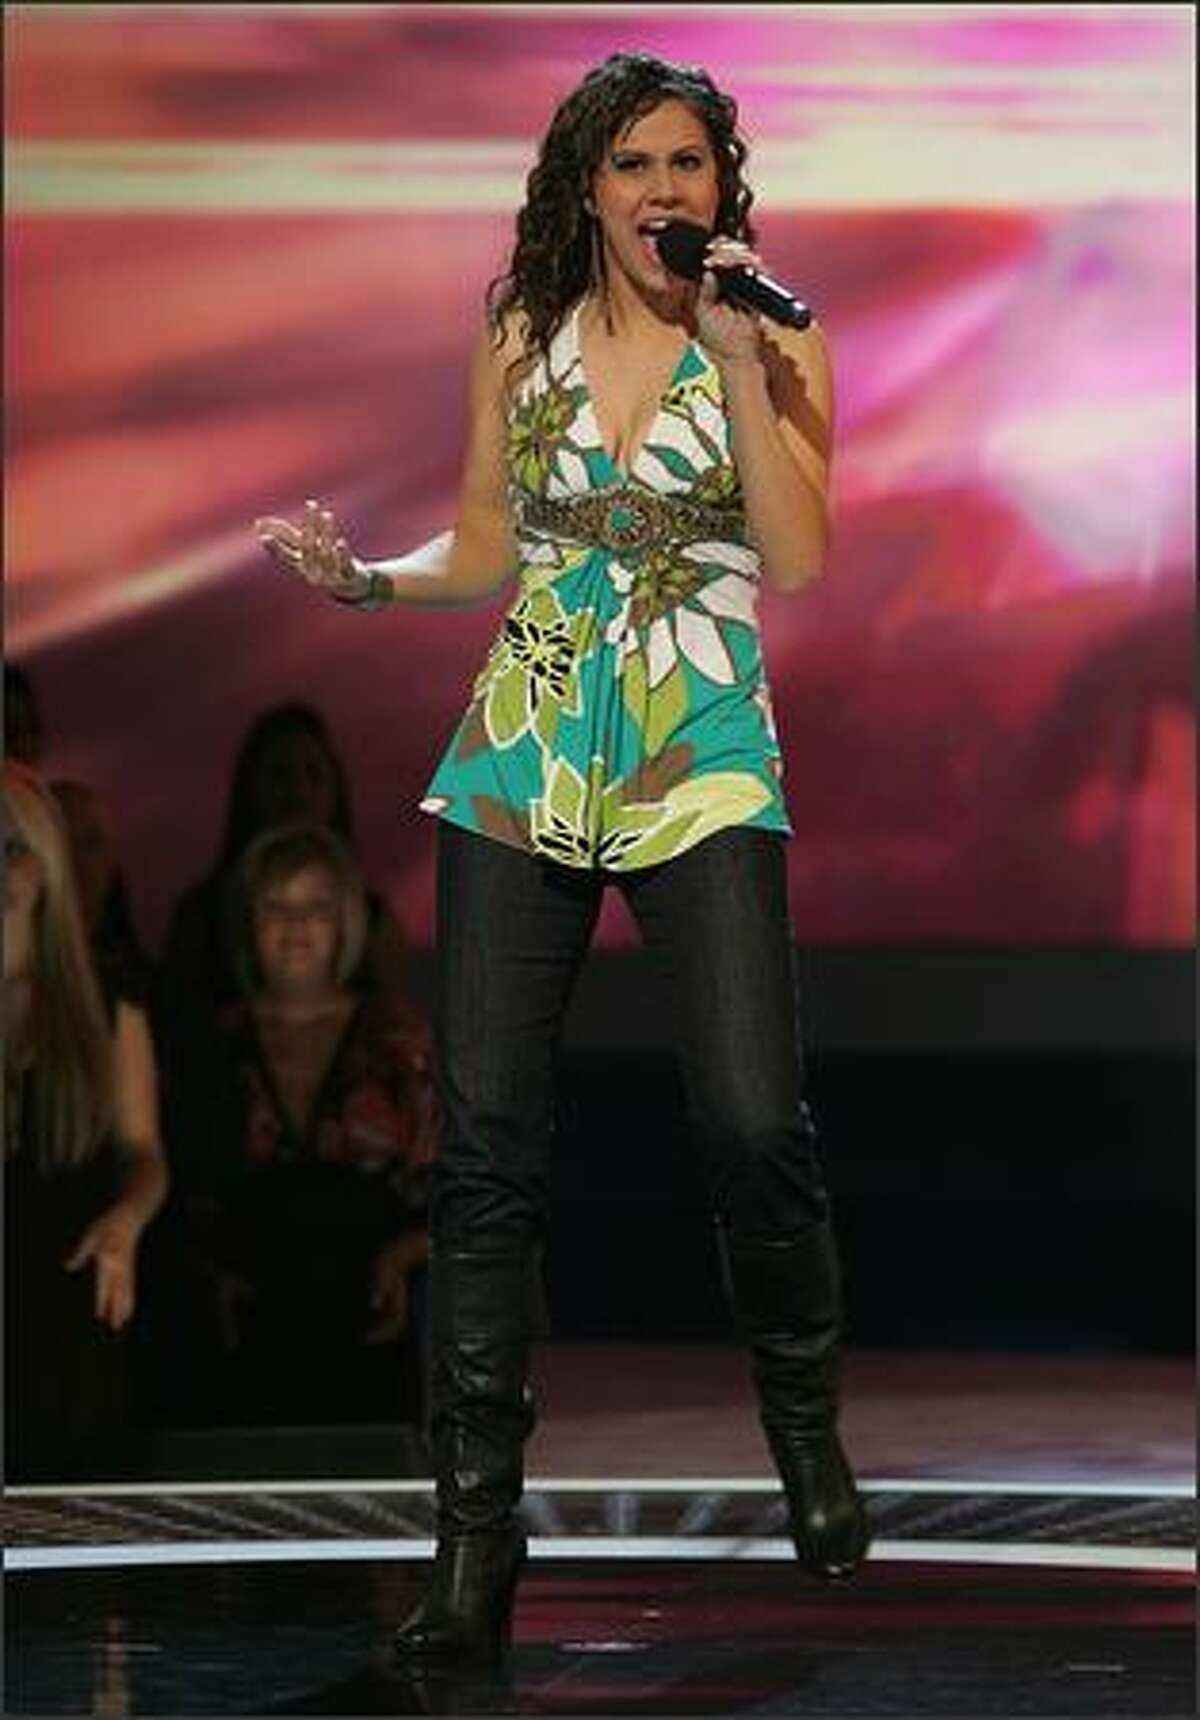 """Haley Scarnato performs in front of the judges on """"American Idol"""" Wednesday, Feb. 27, 2007."""